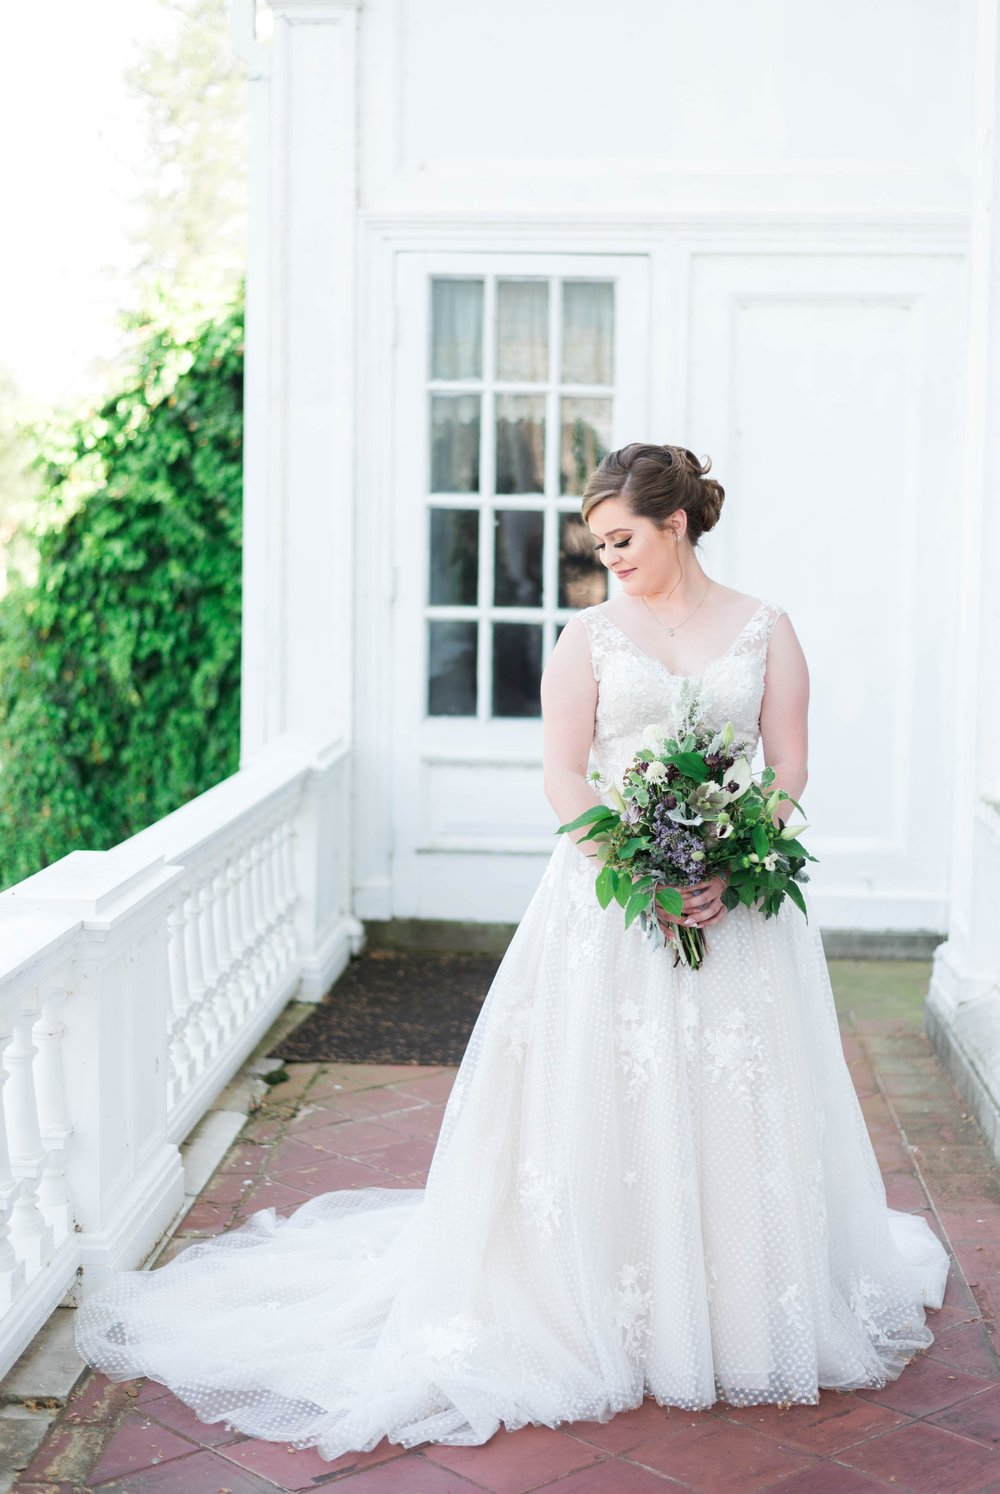 Jillian+Abi_OakridgeEstate_Wedding_VirginiaWeddingPhotographer_SpringWedding 24.jpg